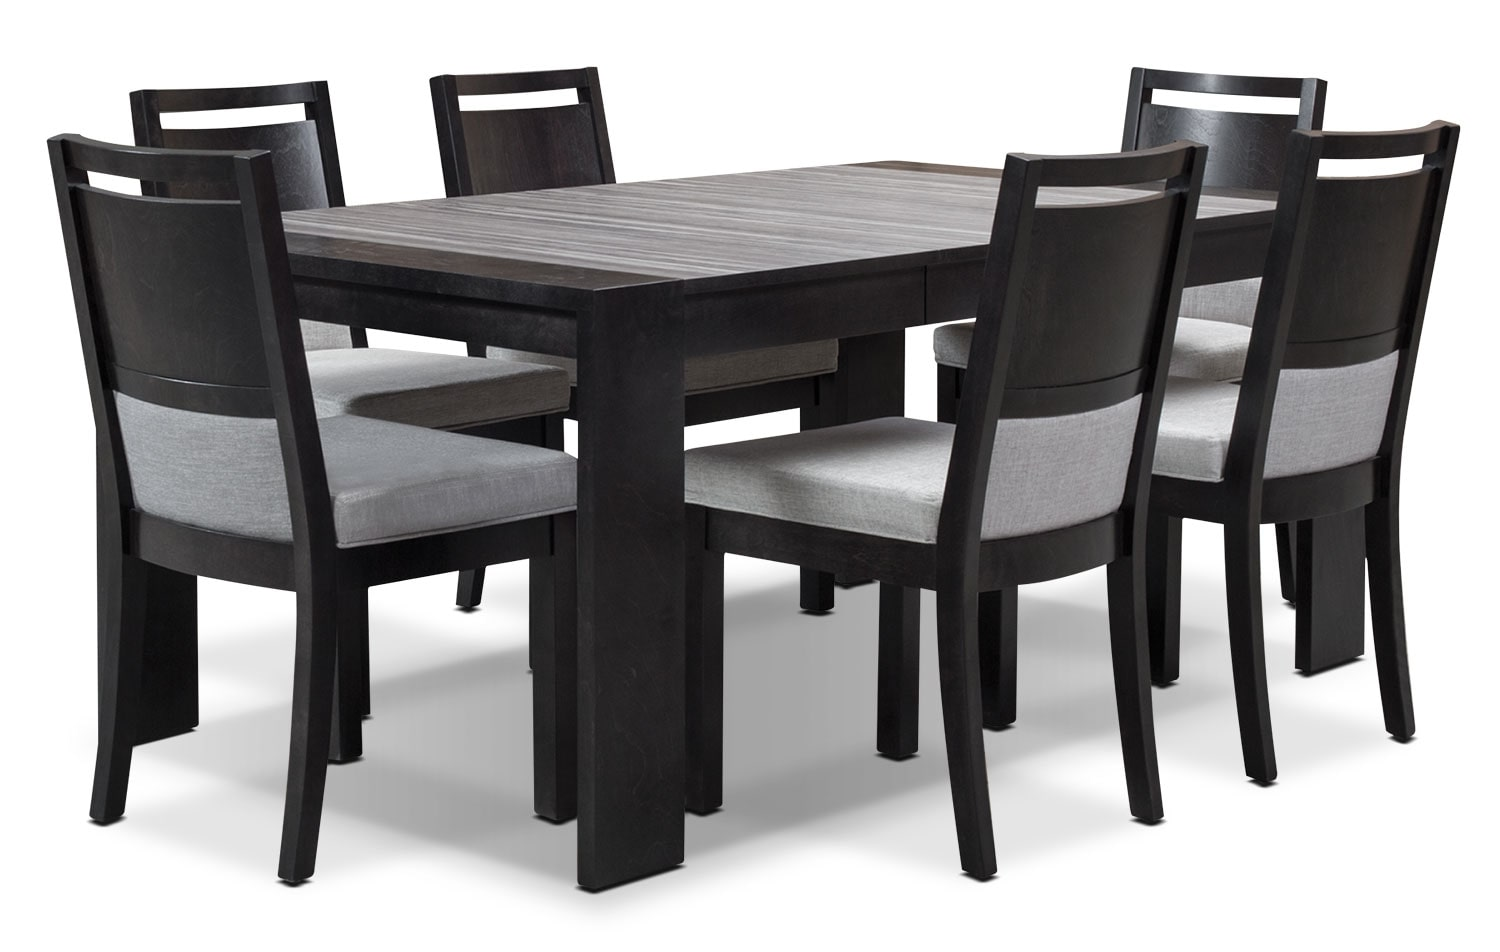 Dining Room Furniture - Khala 7-Piece Dining Room Set - Espresso